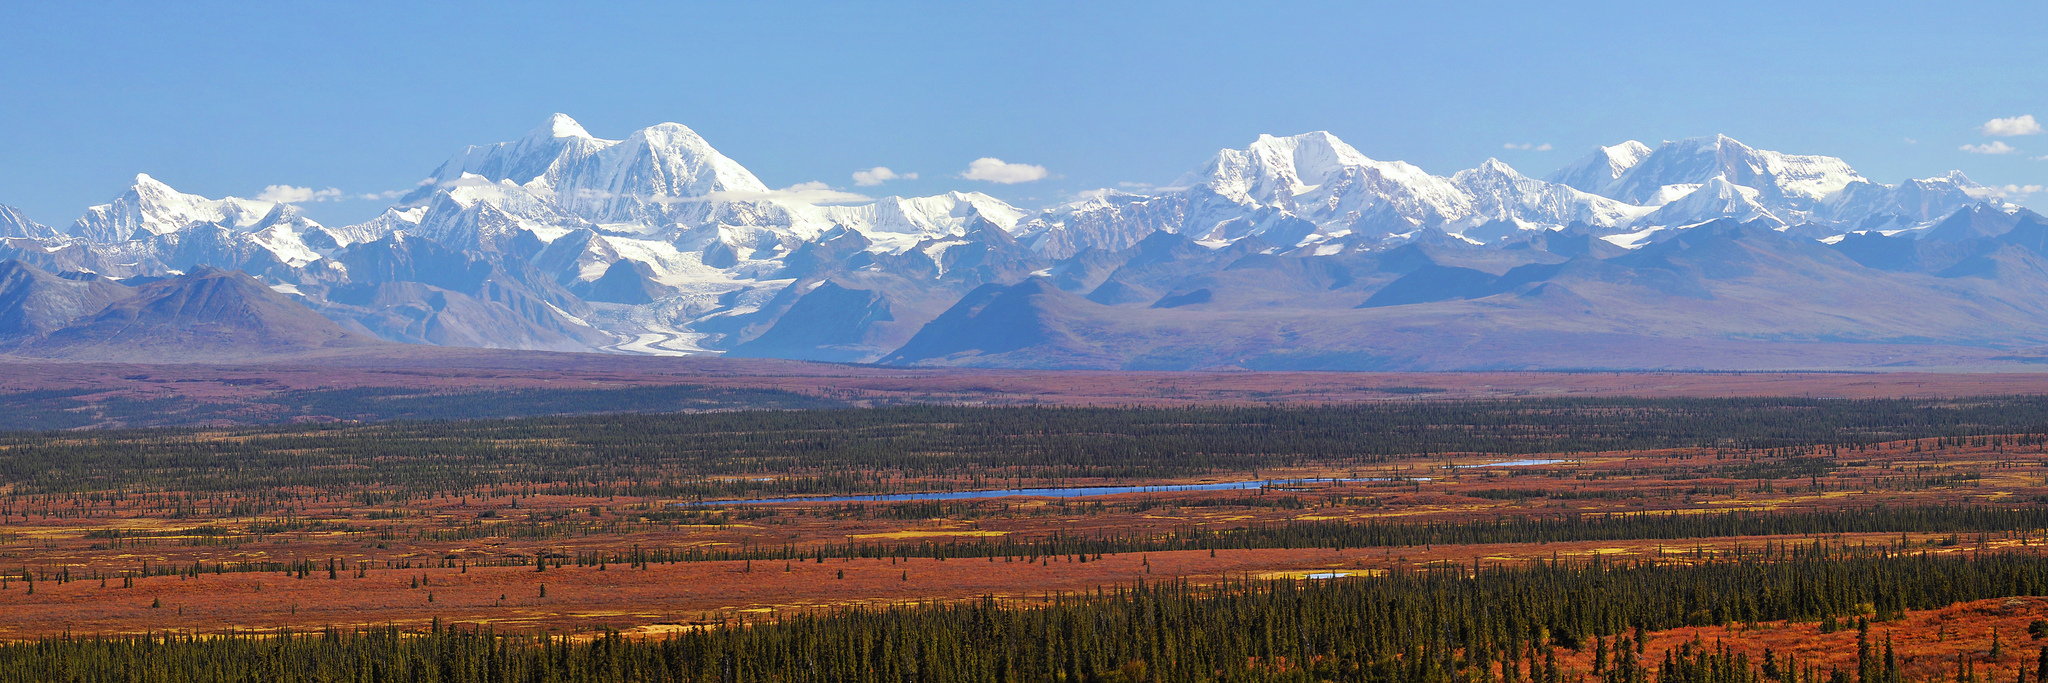 Alaska's wilderness is unrivaled, and protected thanks to Celia Hunter. Image by  Paxson Woelber .